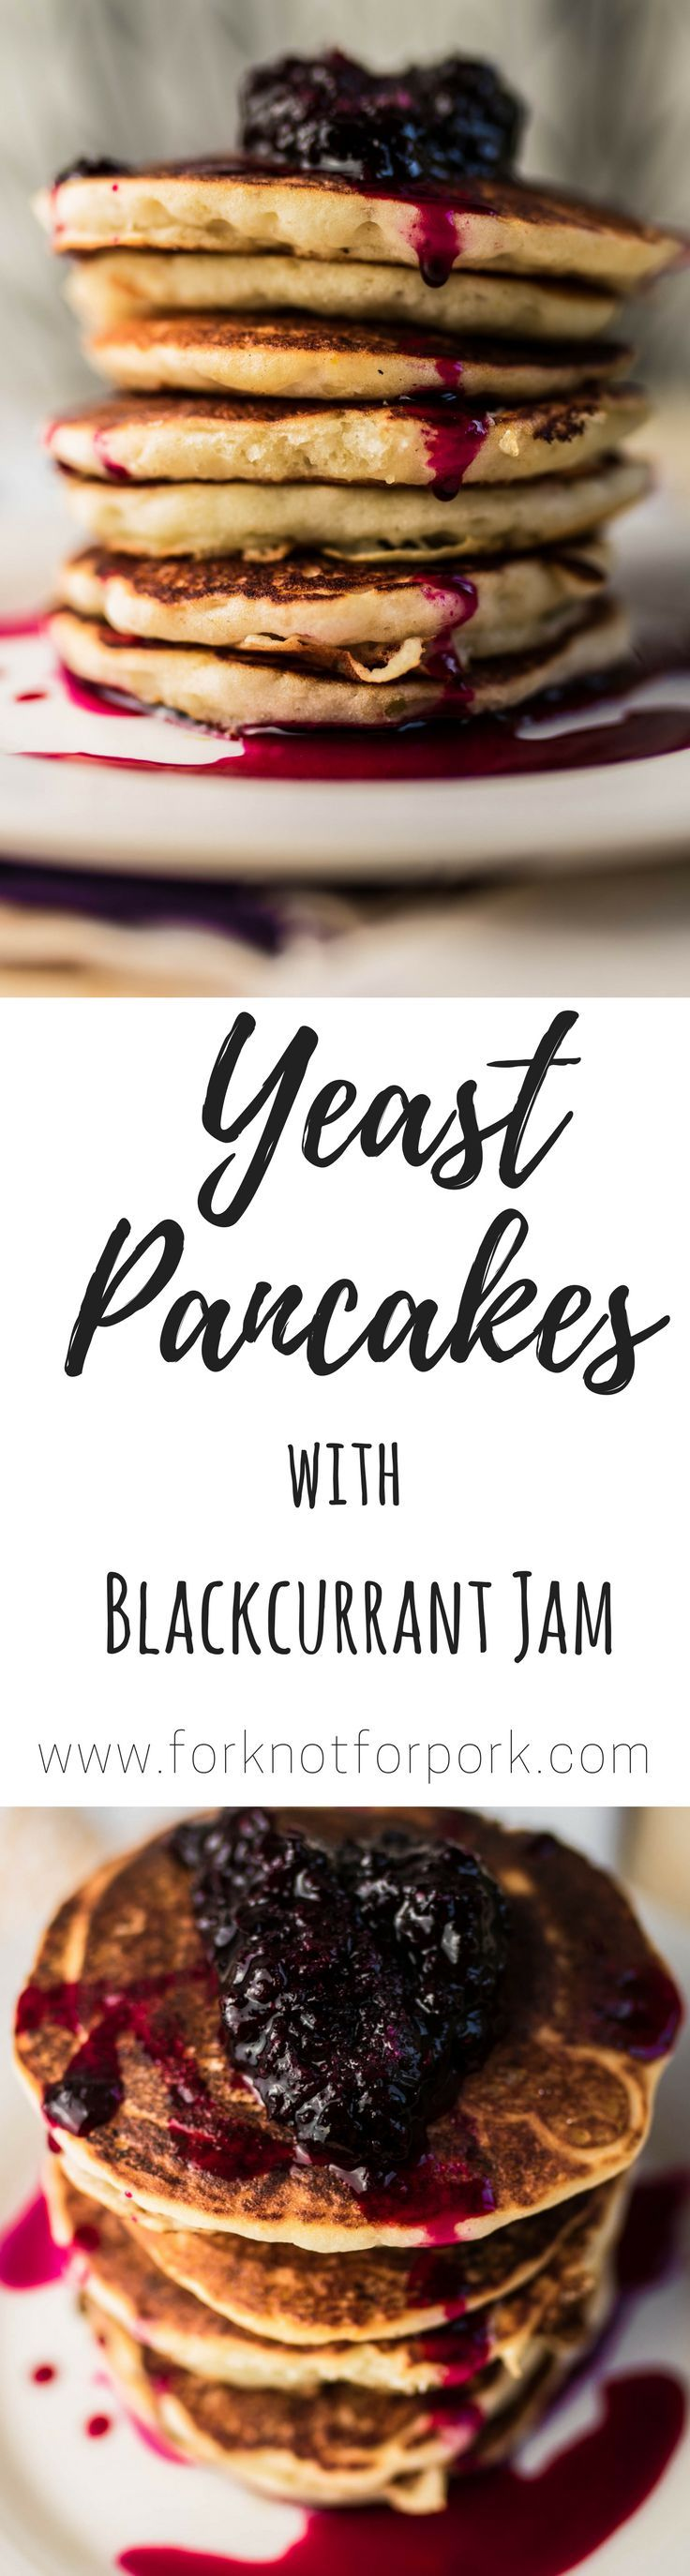 Yeast pancakes with blackcurrant jam. #Vegan and #gluten free option to discover East European kitchen.